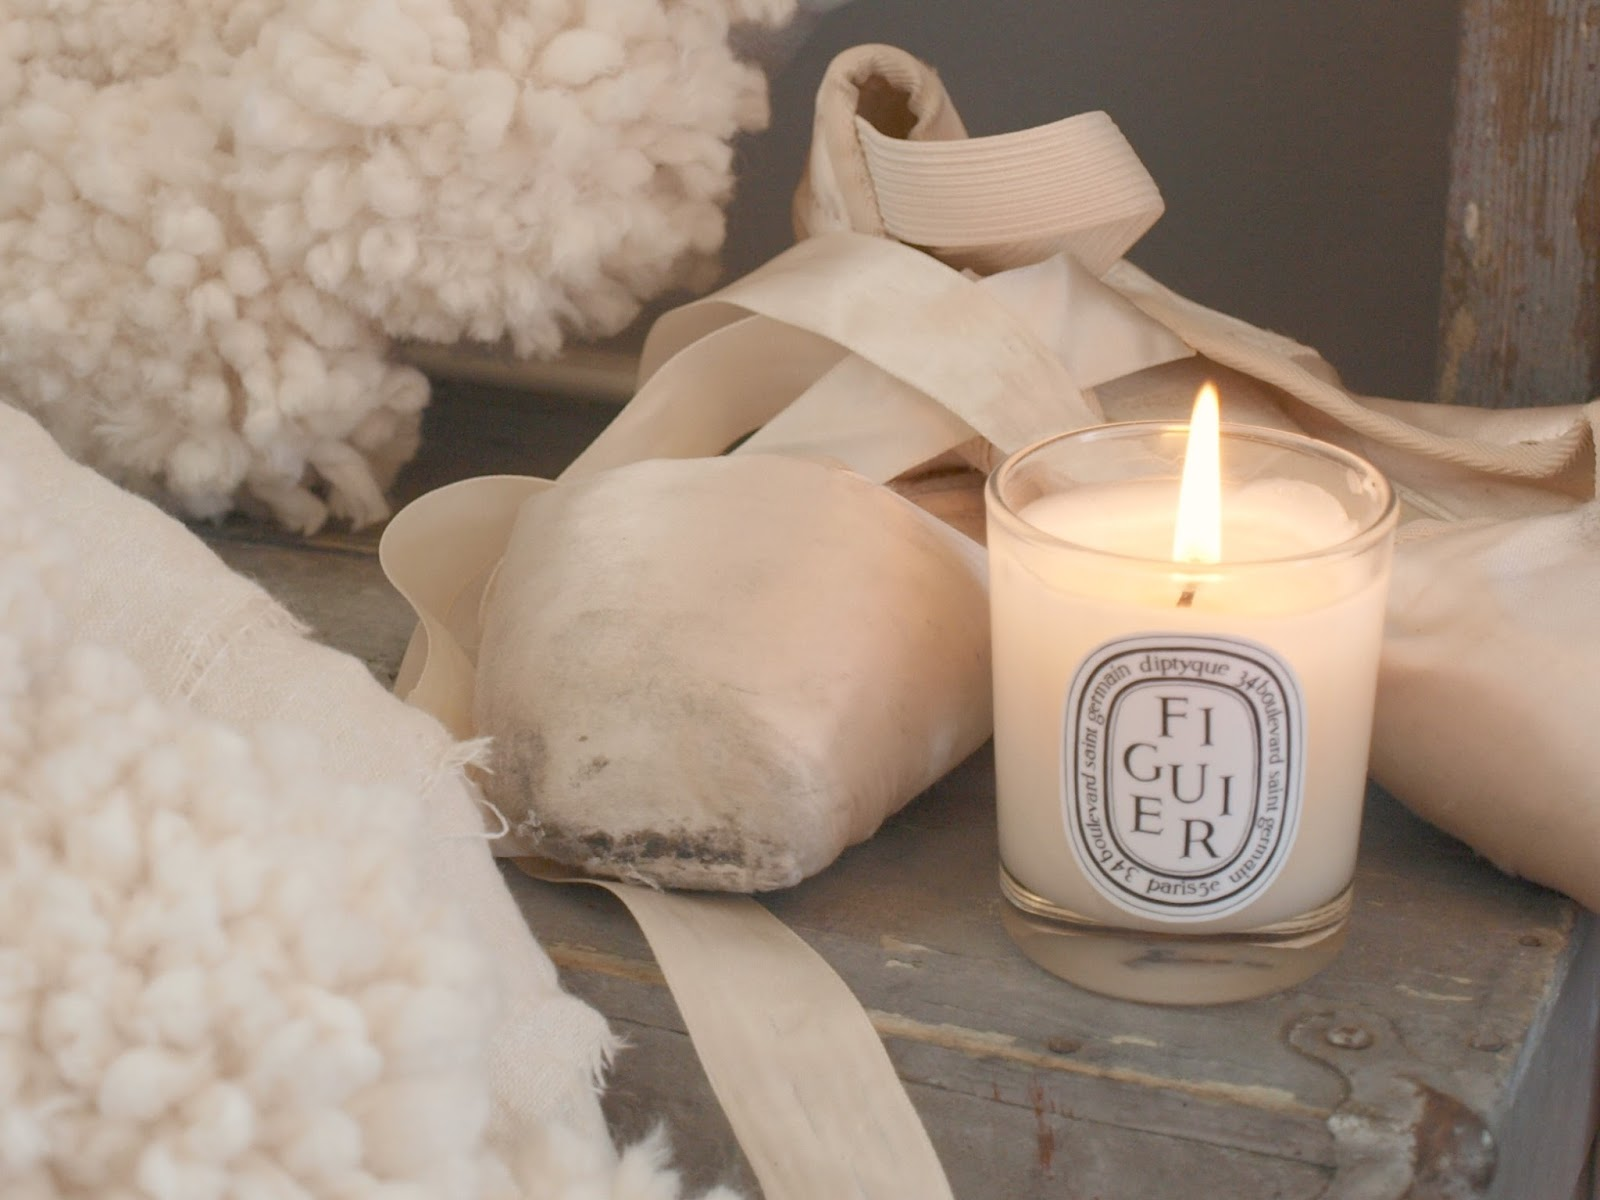 Diptyque candle, pink pointe shoe and cozy white handmade woolly pom pom wreath